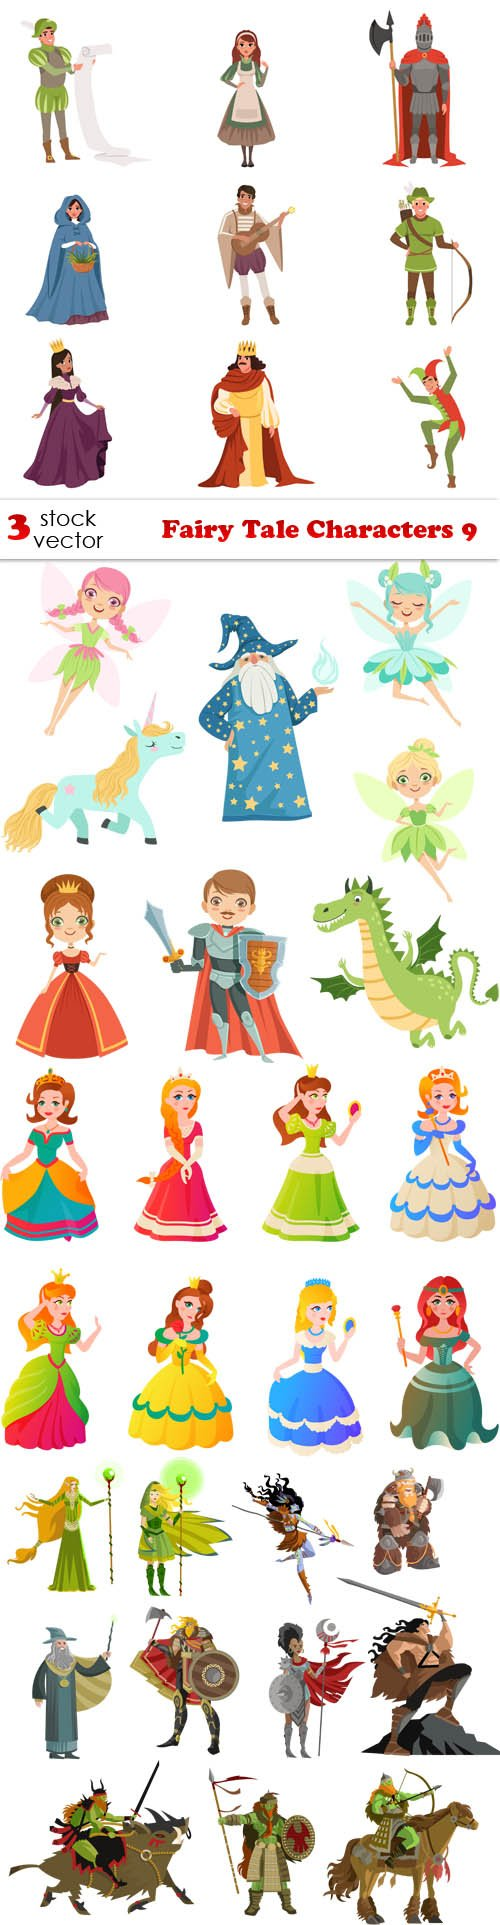 Vectors - Fairy Tale Characters 9